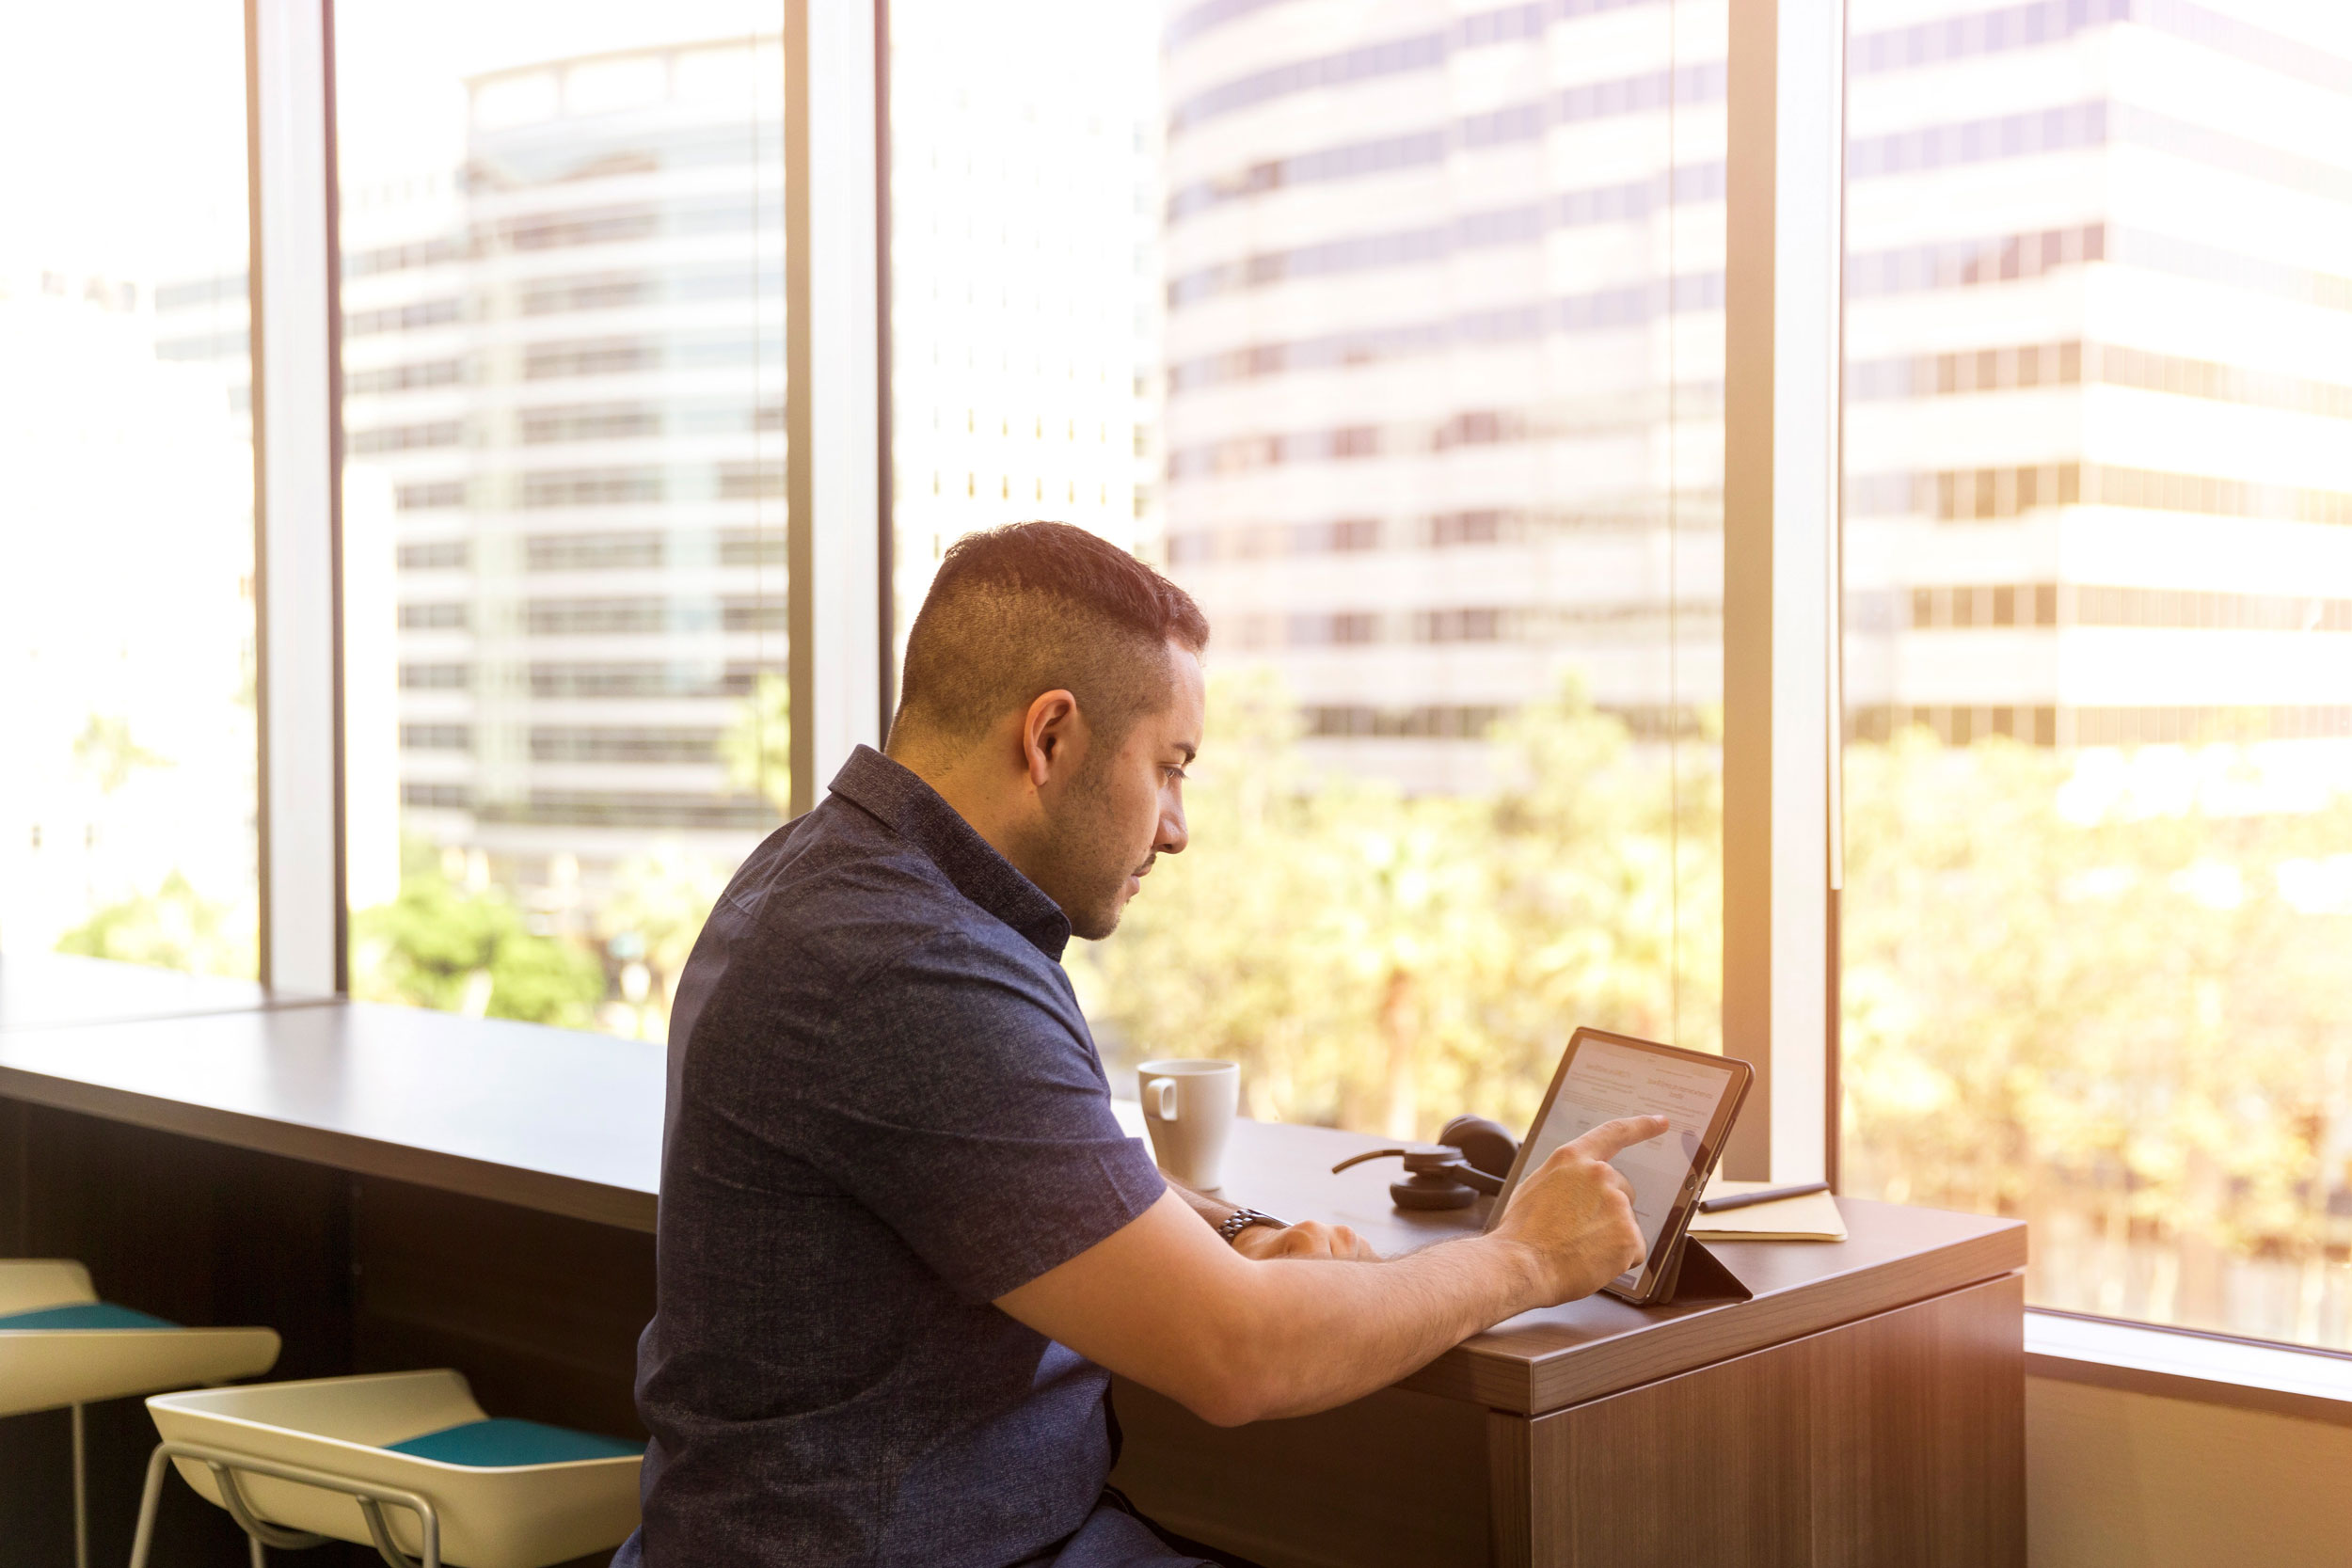 Man near window viewing and touching a digital tablet